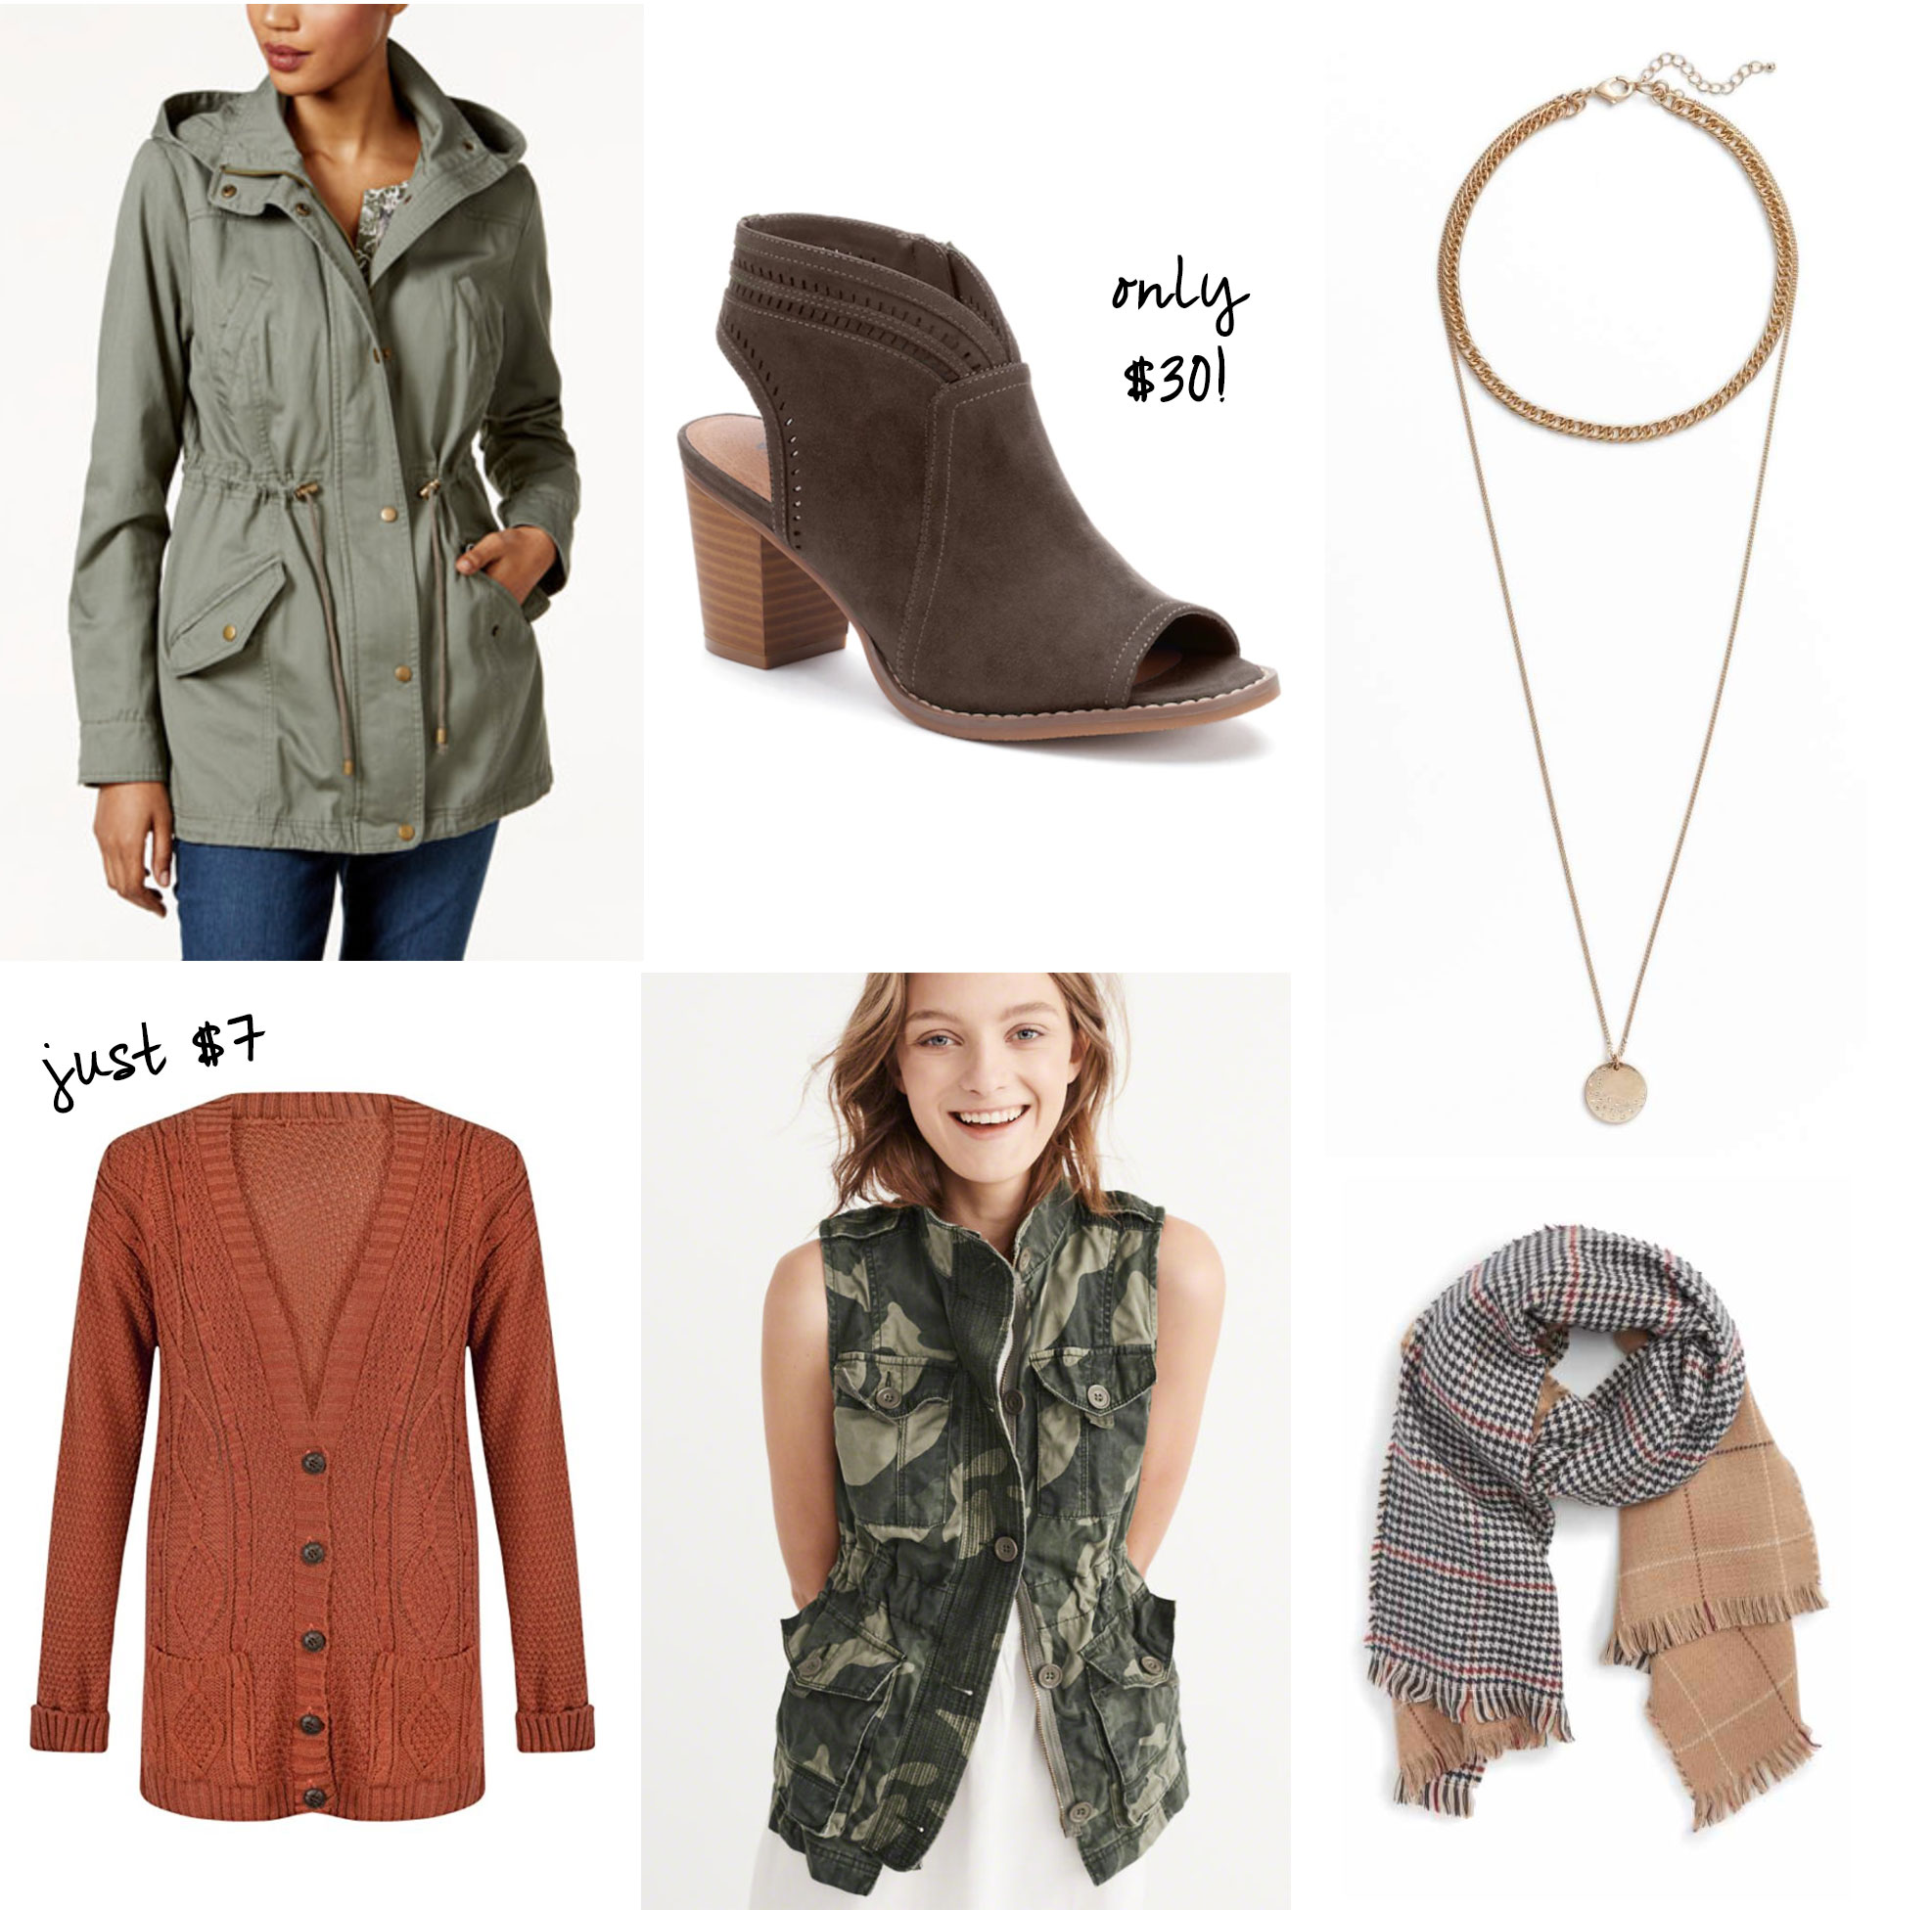 Fall fashion finds from $7!